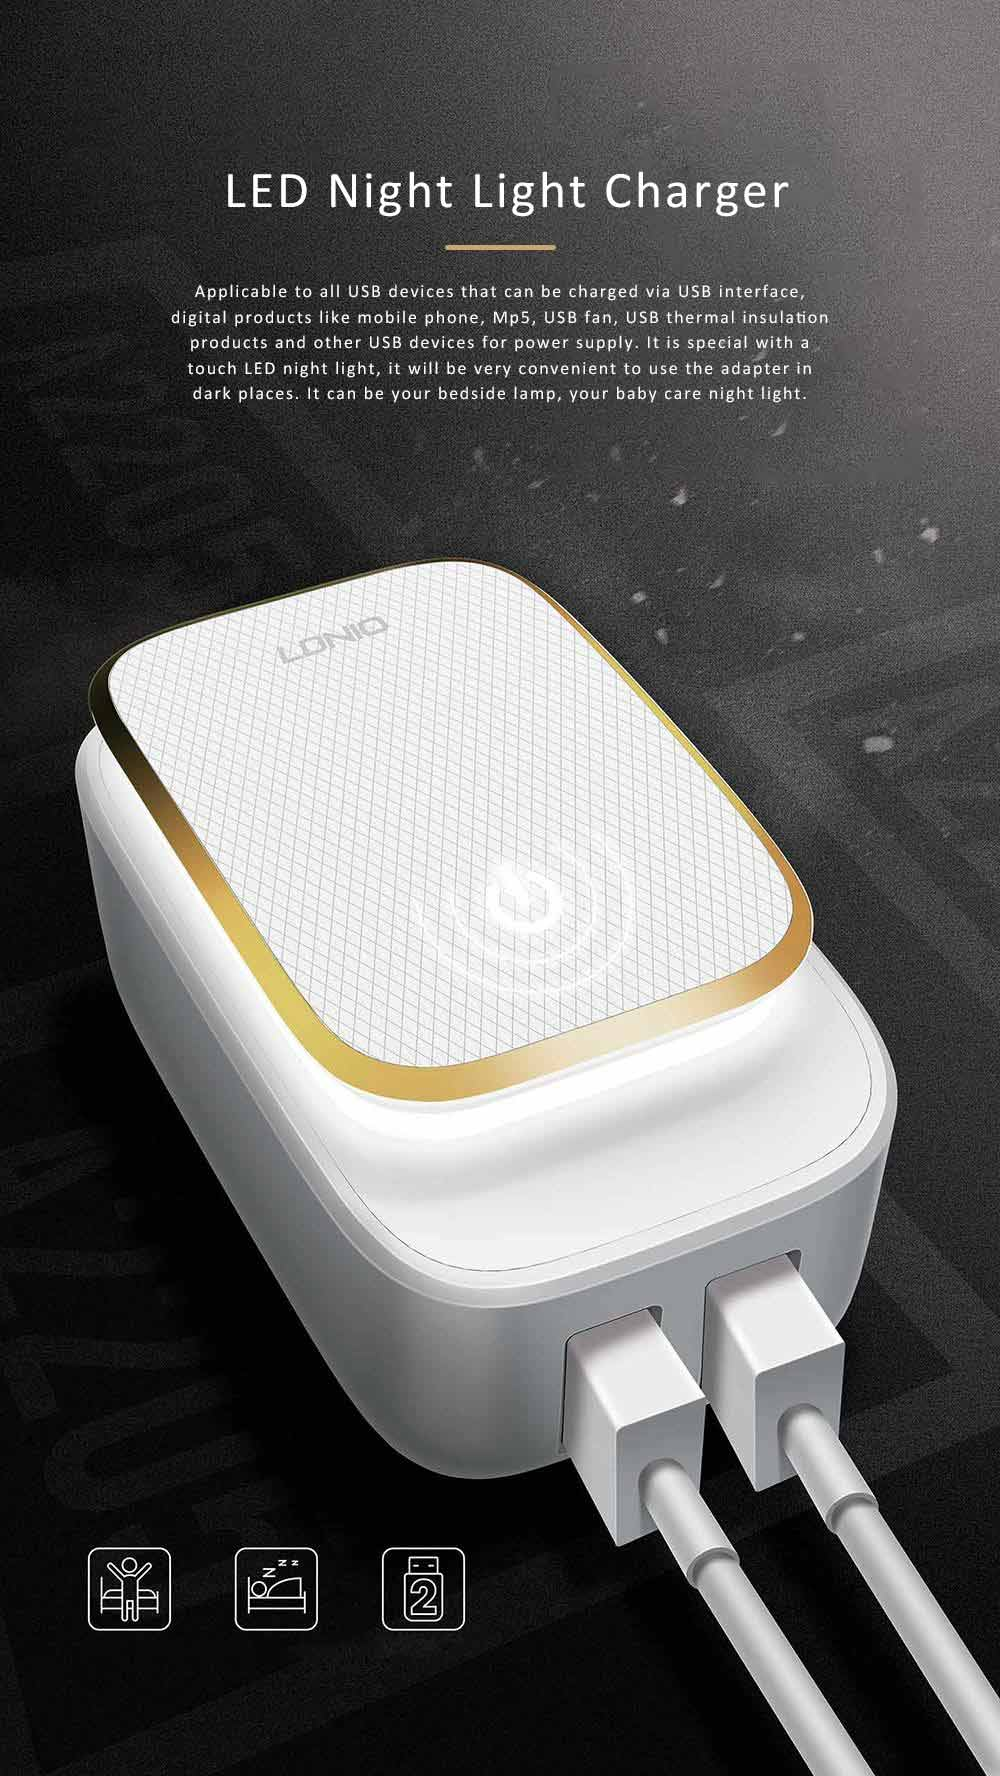 LED Nightlight Charger, USB Wall Charger with 2 Ports, USB Smart Home Travel Charger, Touch Control Power Adapter Charger with Soft Night Light for Home Office Travel 0